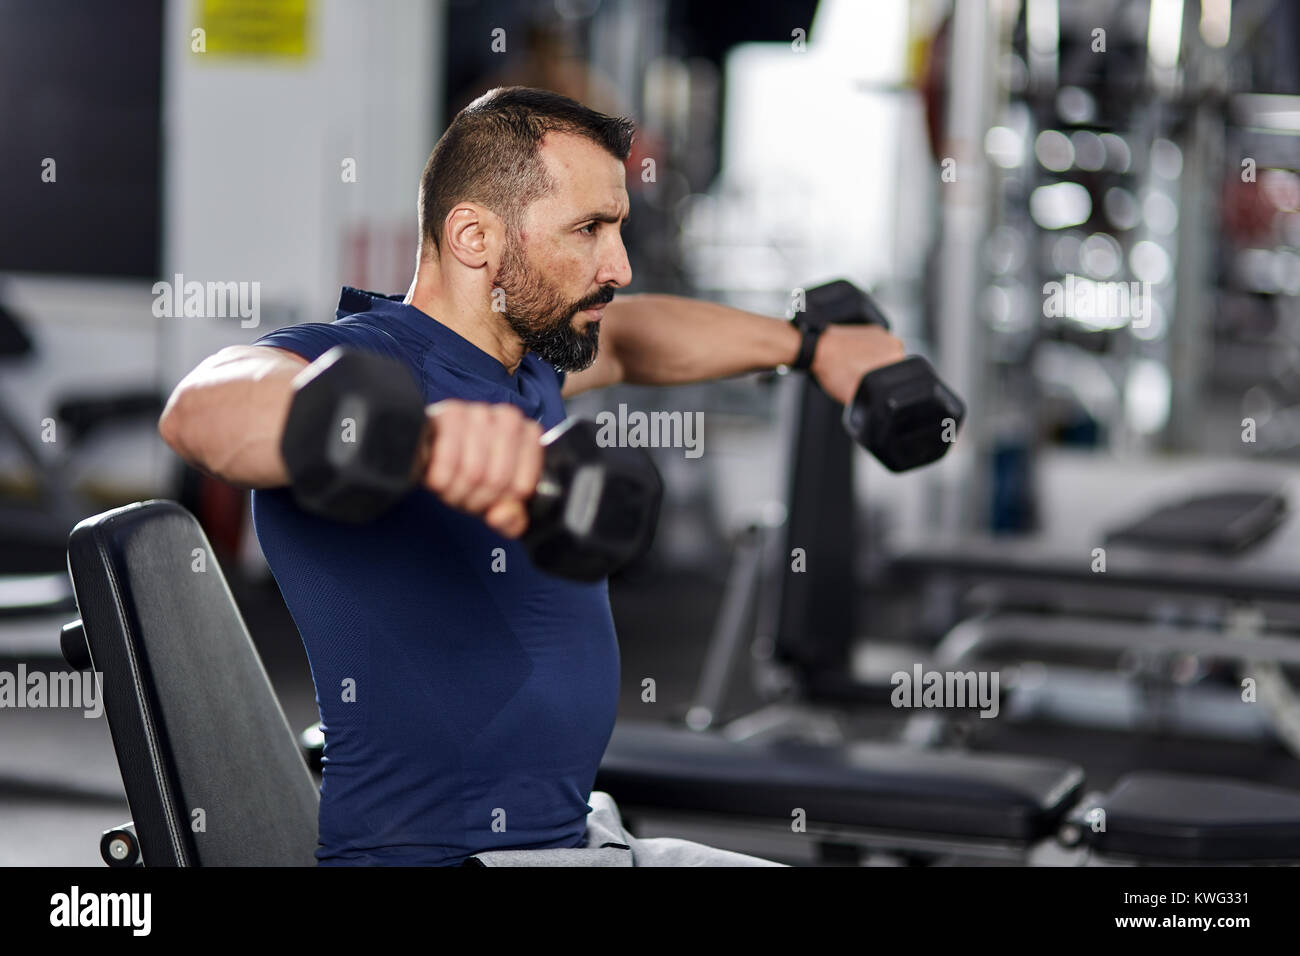 Man Doing Shoulder Workout With Dumbbells